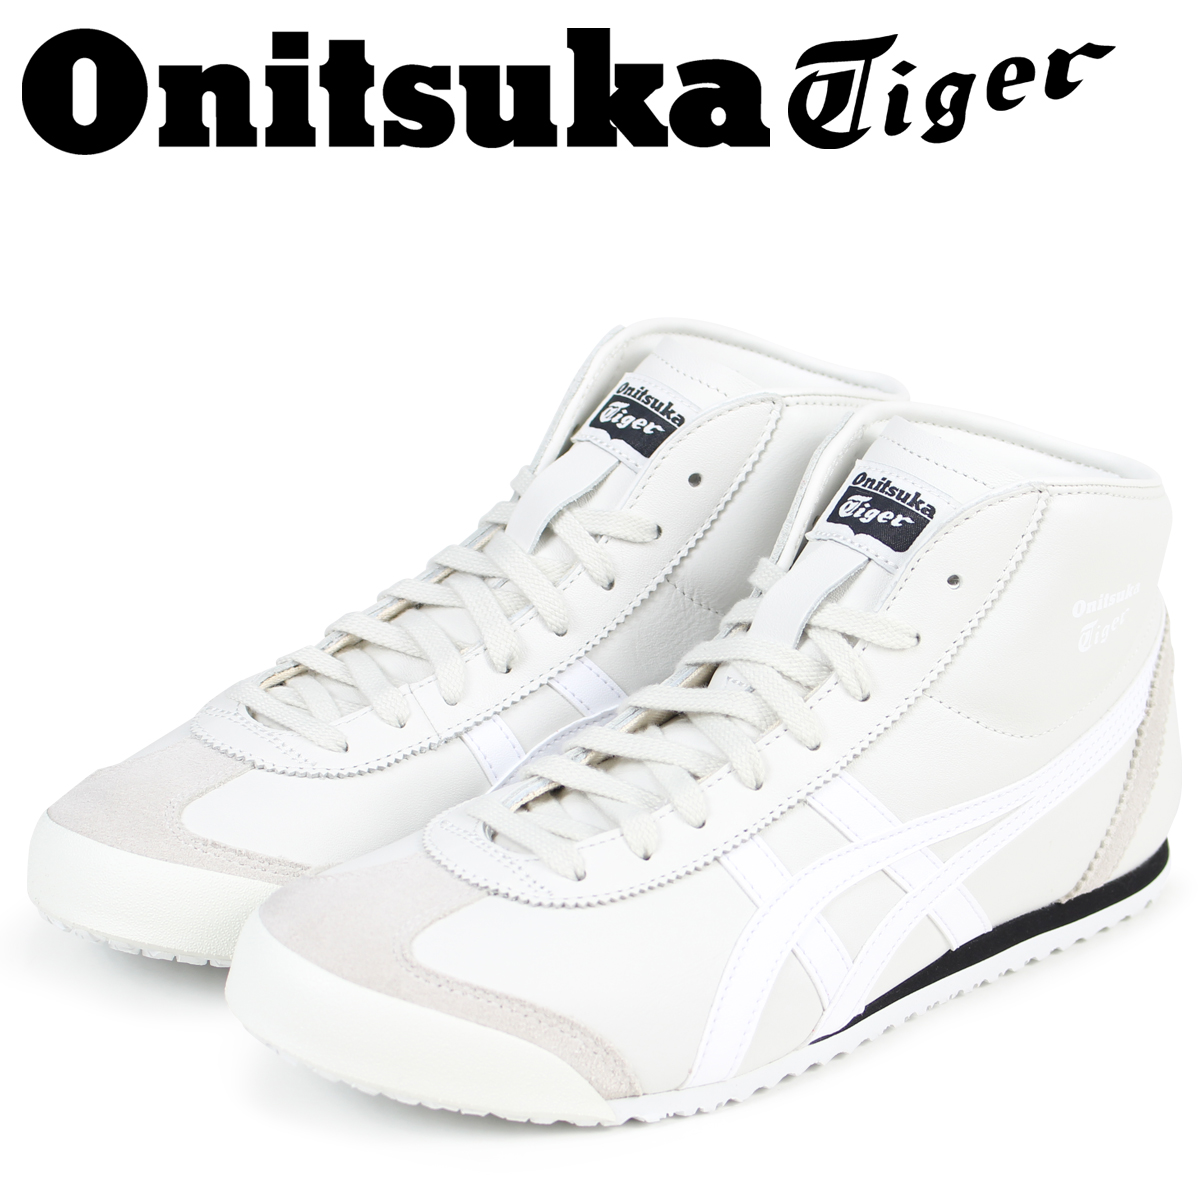 newest collection c43bc 040f6 Onitsuka Tiger Mexico mid runner Onitsuka tiger MEXICO MID RUNNER men  sneakers DL328-9001 THL328-9001 gray